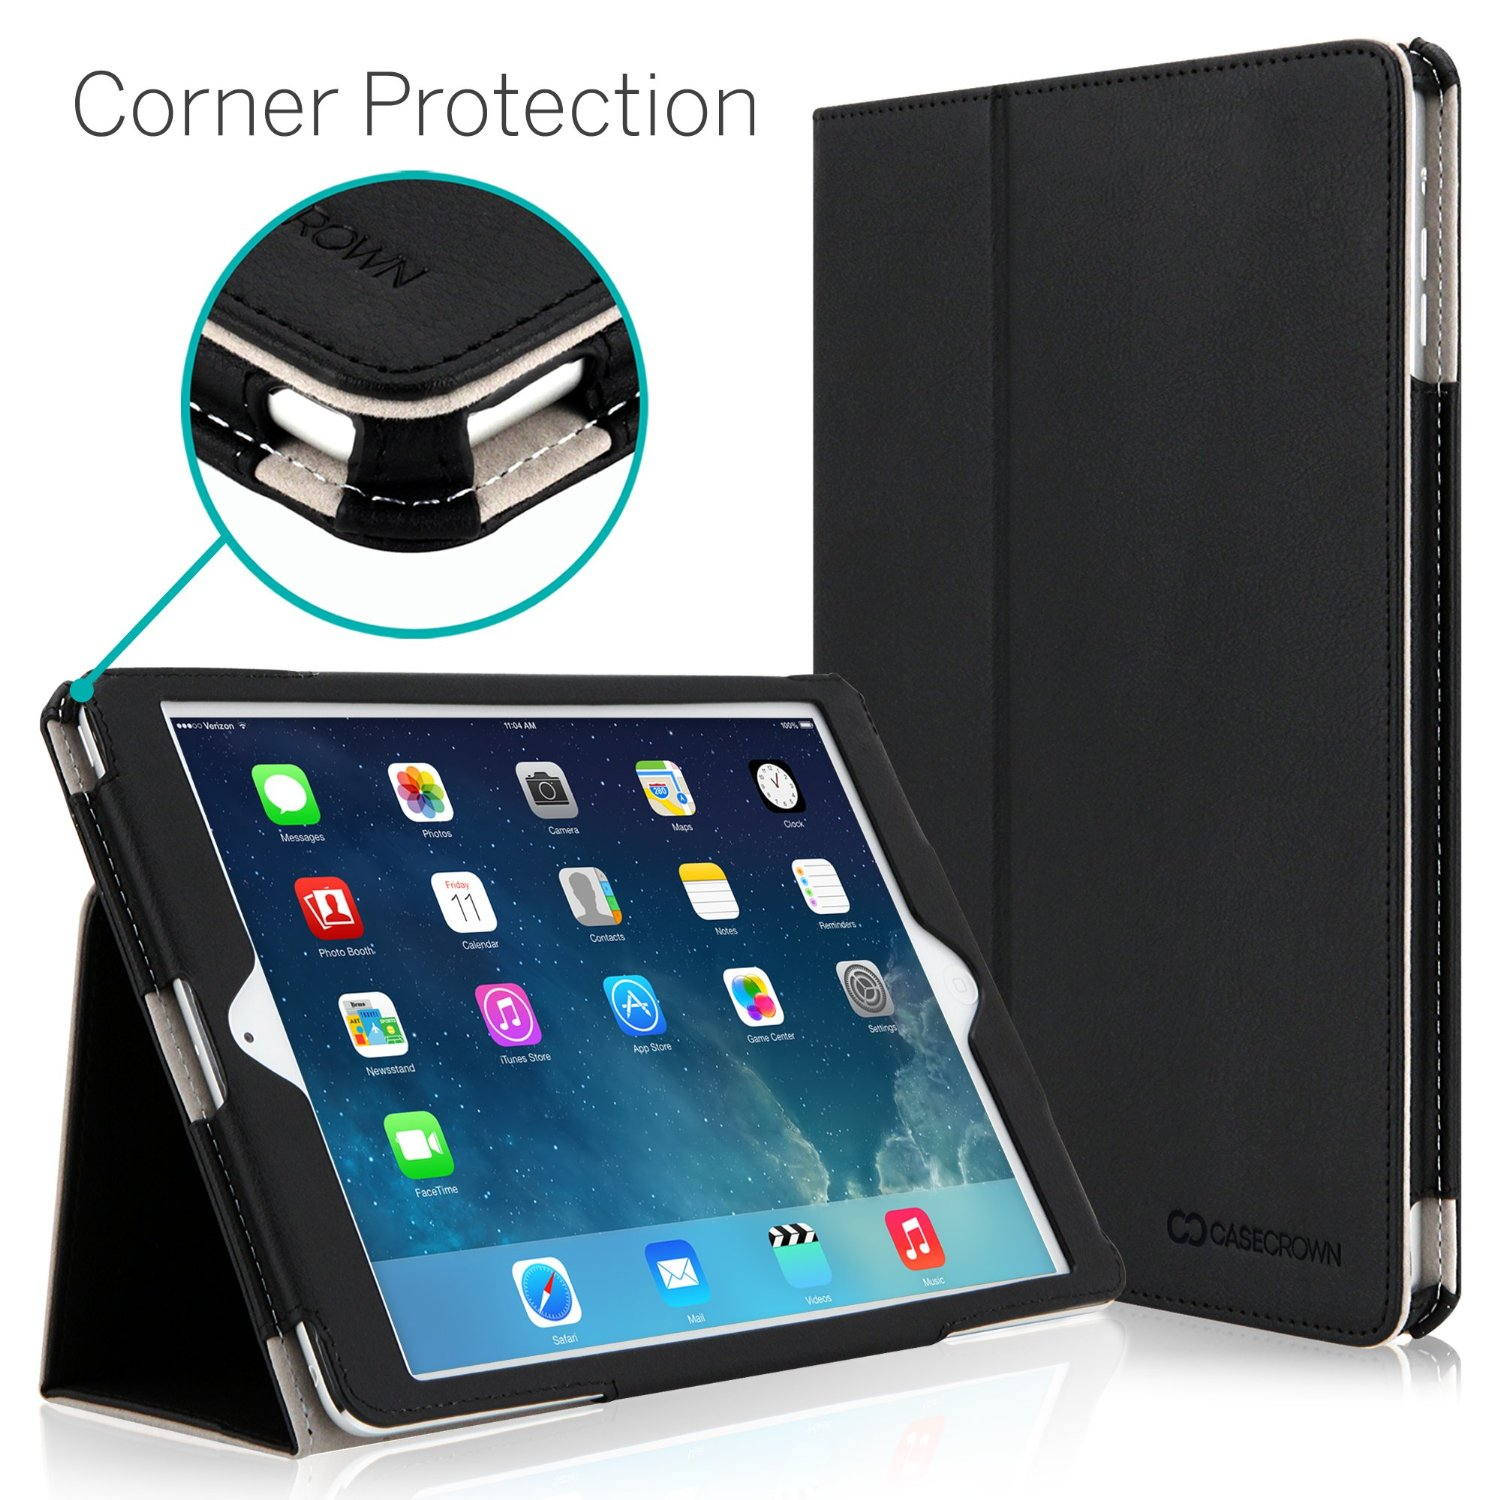 caseCrown_ipad_air_case_